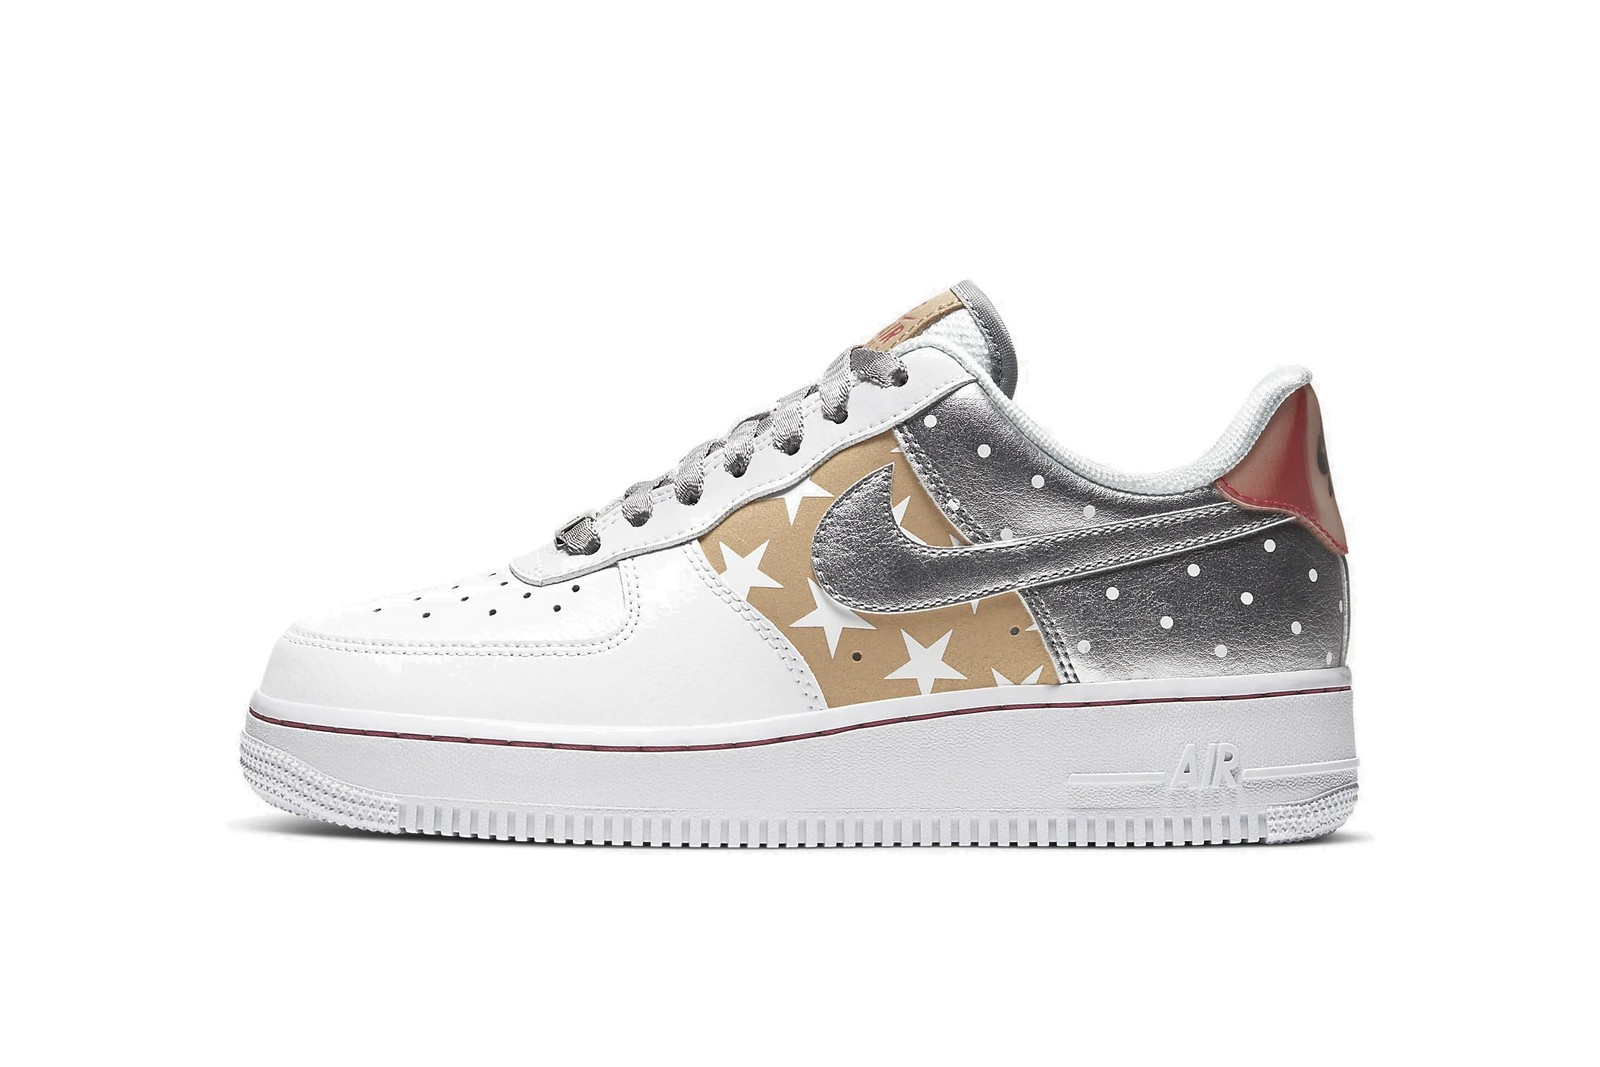 Best Festive Sneakers Sparkly Glitter Shoes Holiday Nike Jordan Brand Off-White™ Party Silver Gold